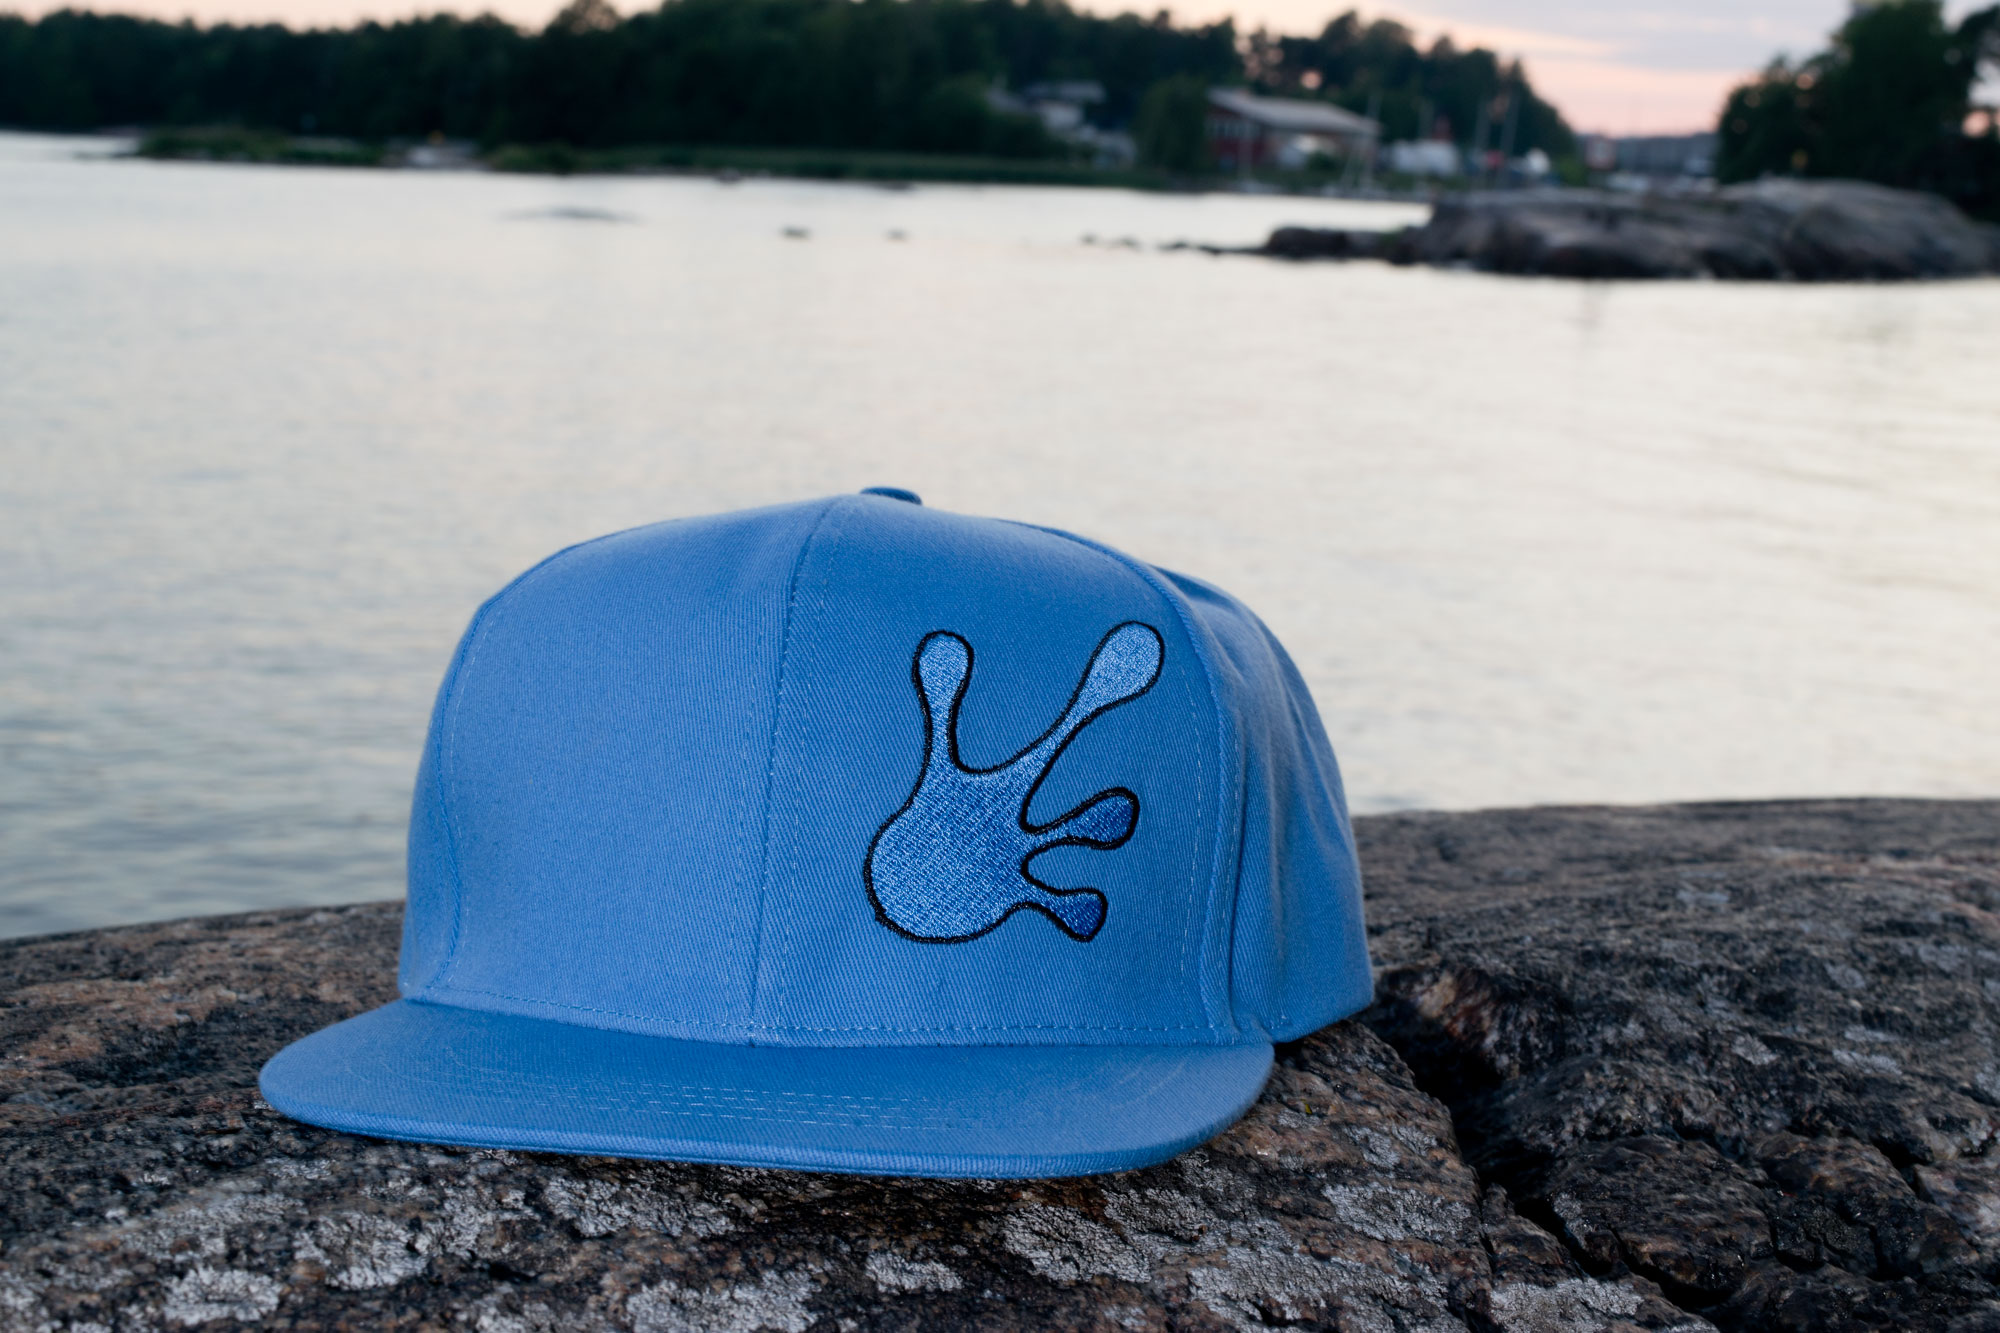 Believe in yourself - Screw Them All logo hat - Flat snapback light blue